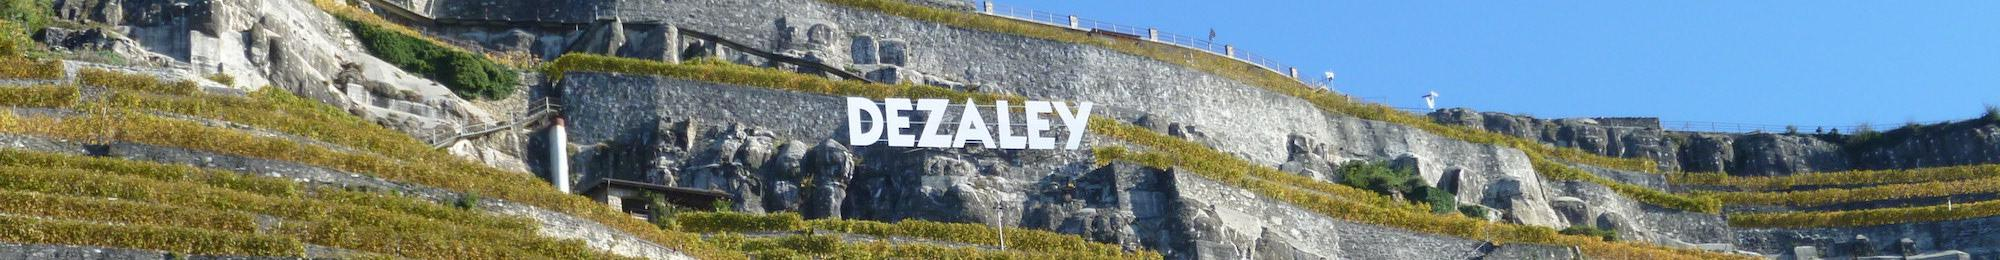 Swiss Wine Dezaley